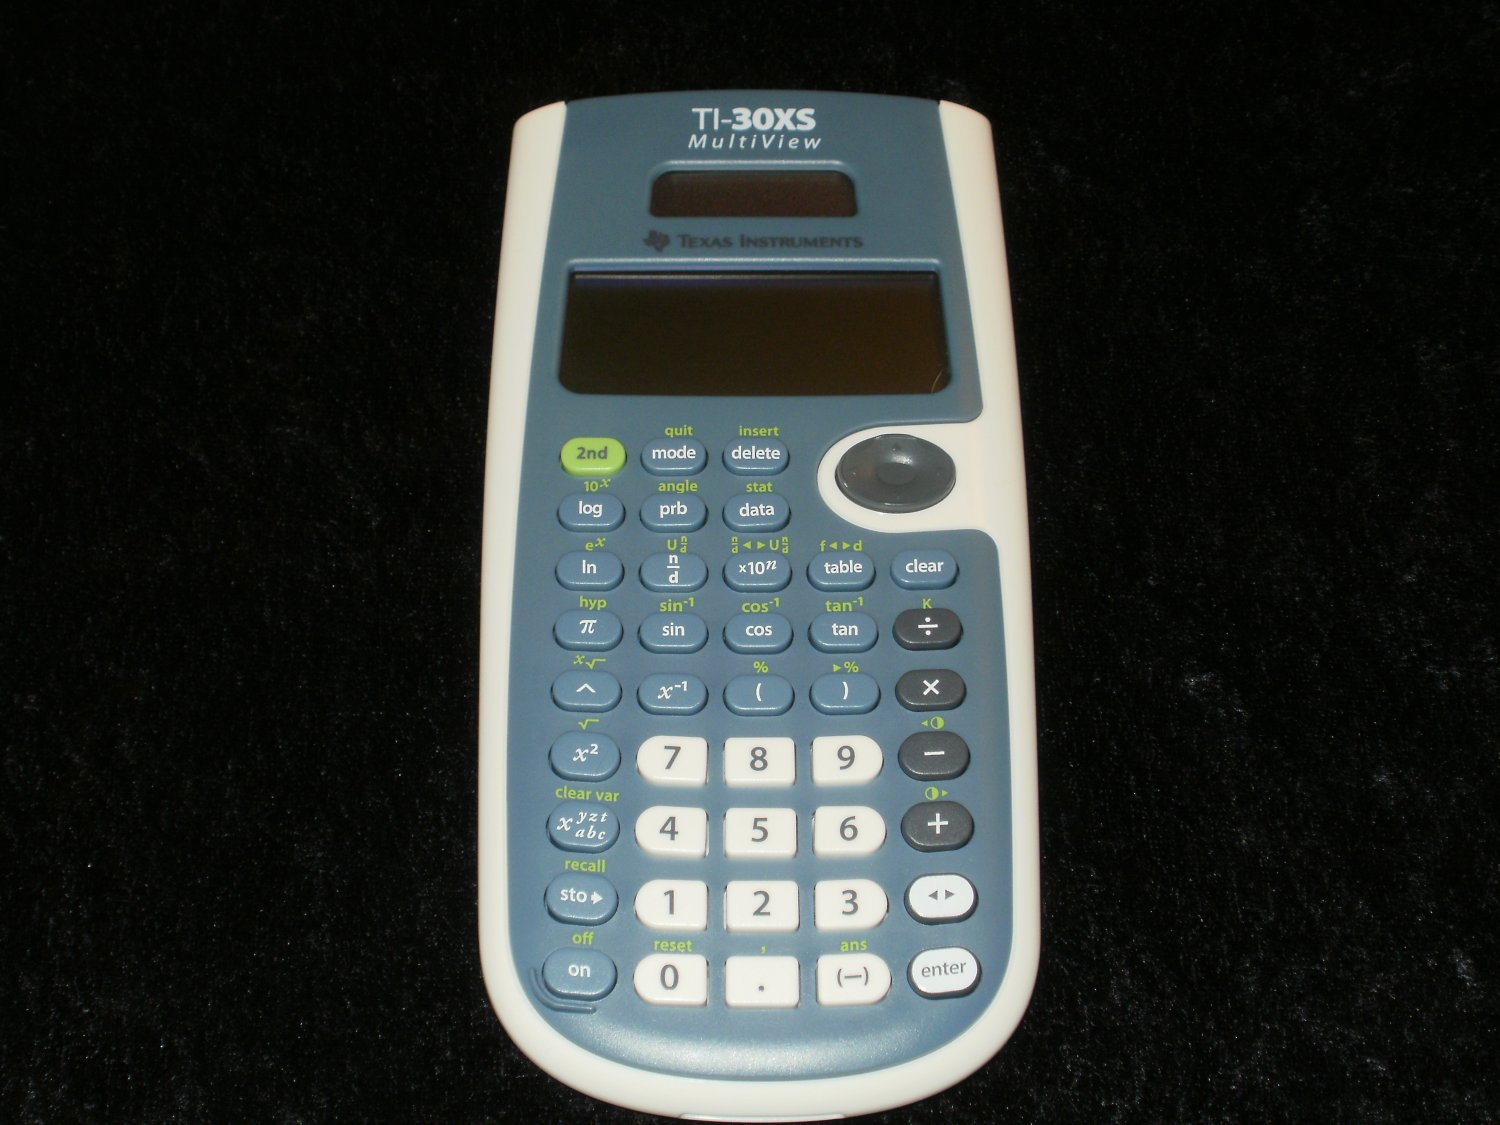 TI-30XS MultiView Scientific Calculator - Texas Instruments